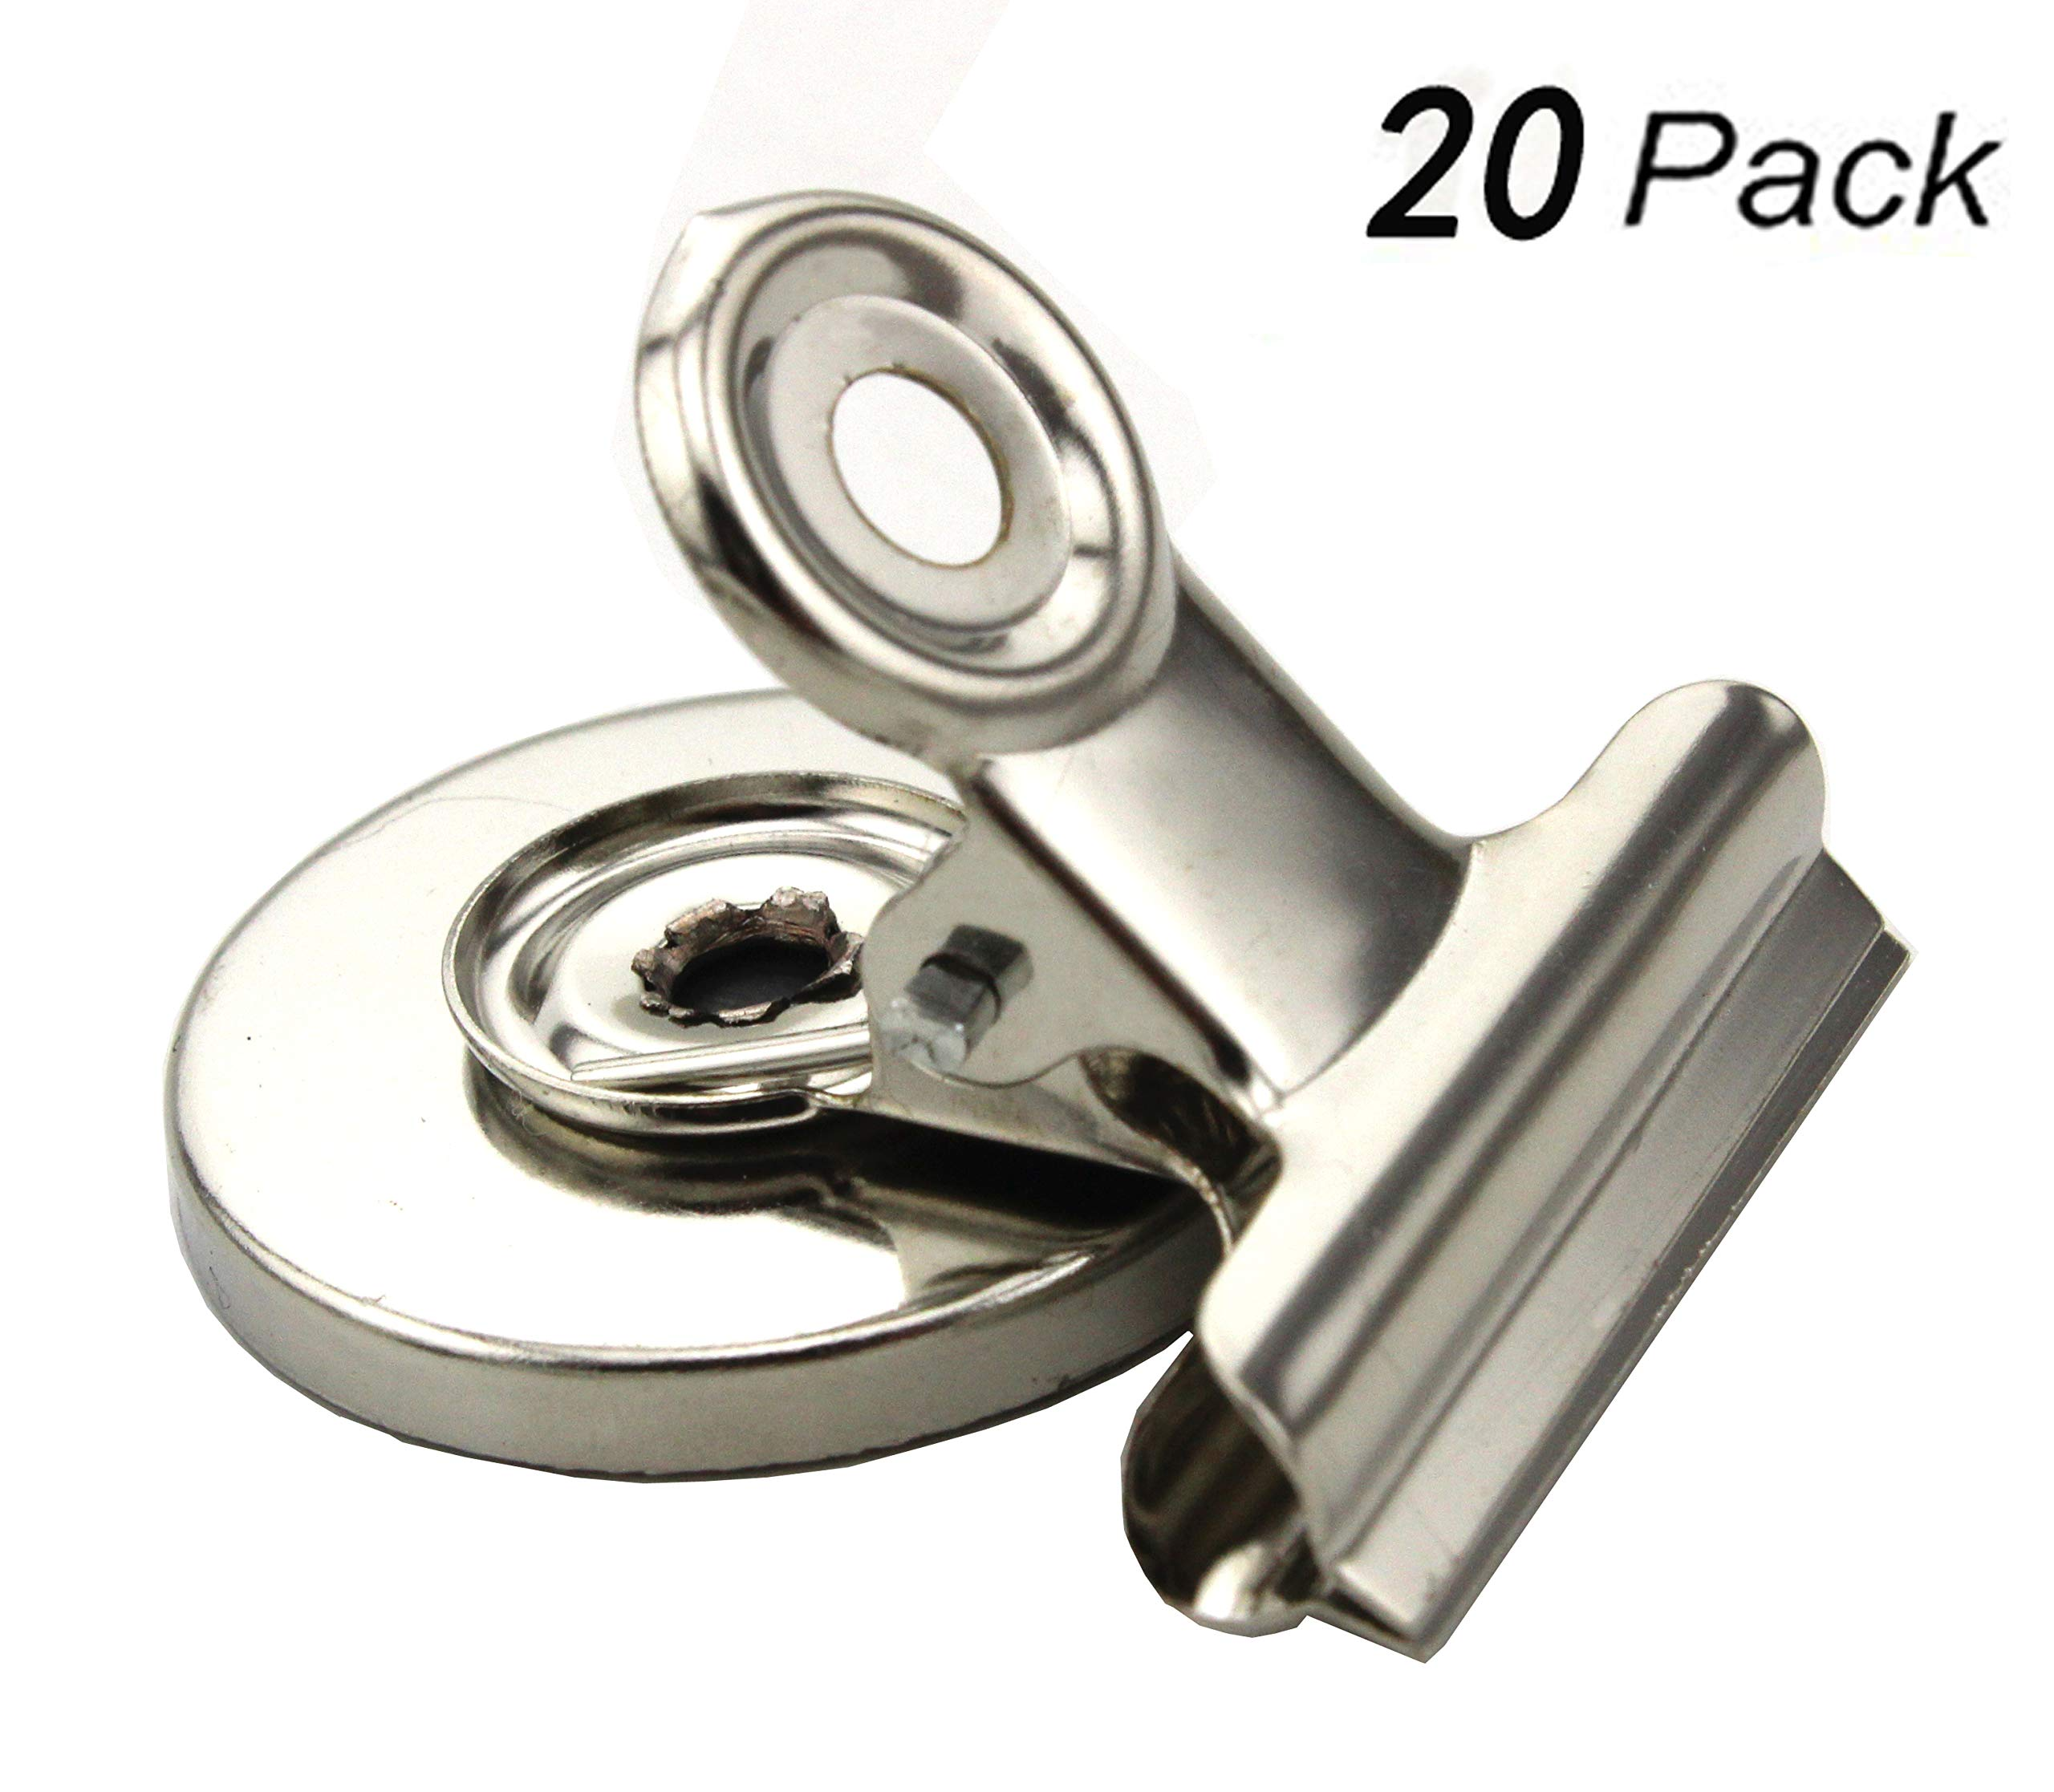 Set of 20 - ZICOME Bulldog Clips, Magnetic Back, Size 30mm 40mm, 20/Box, Silver